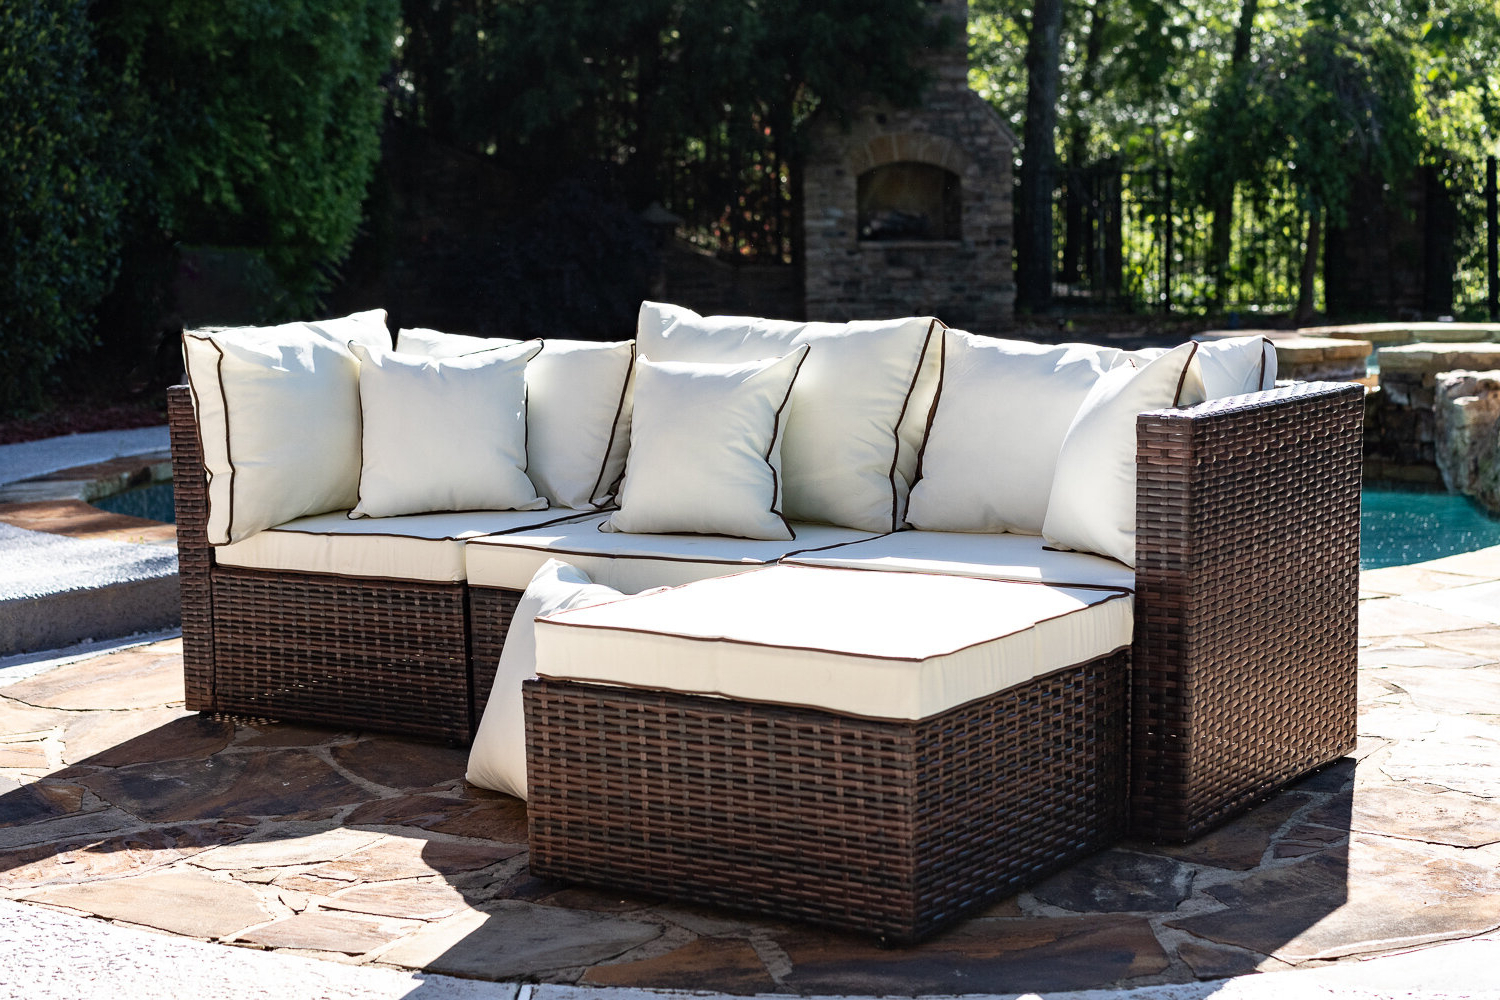 Wayfair With Popular Silloth Patio Sofas With Cushions (View 14 of 20)